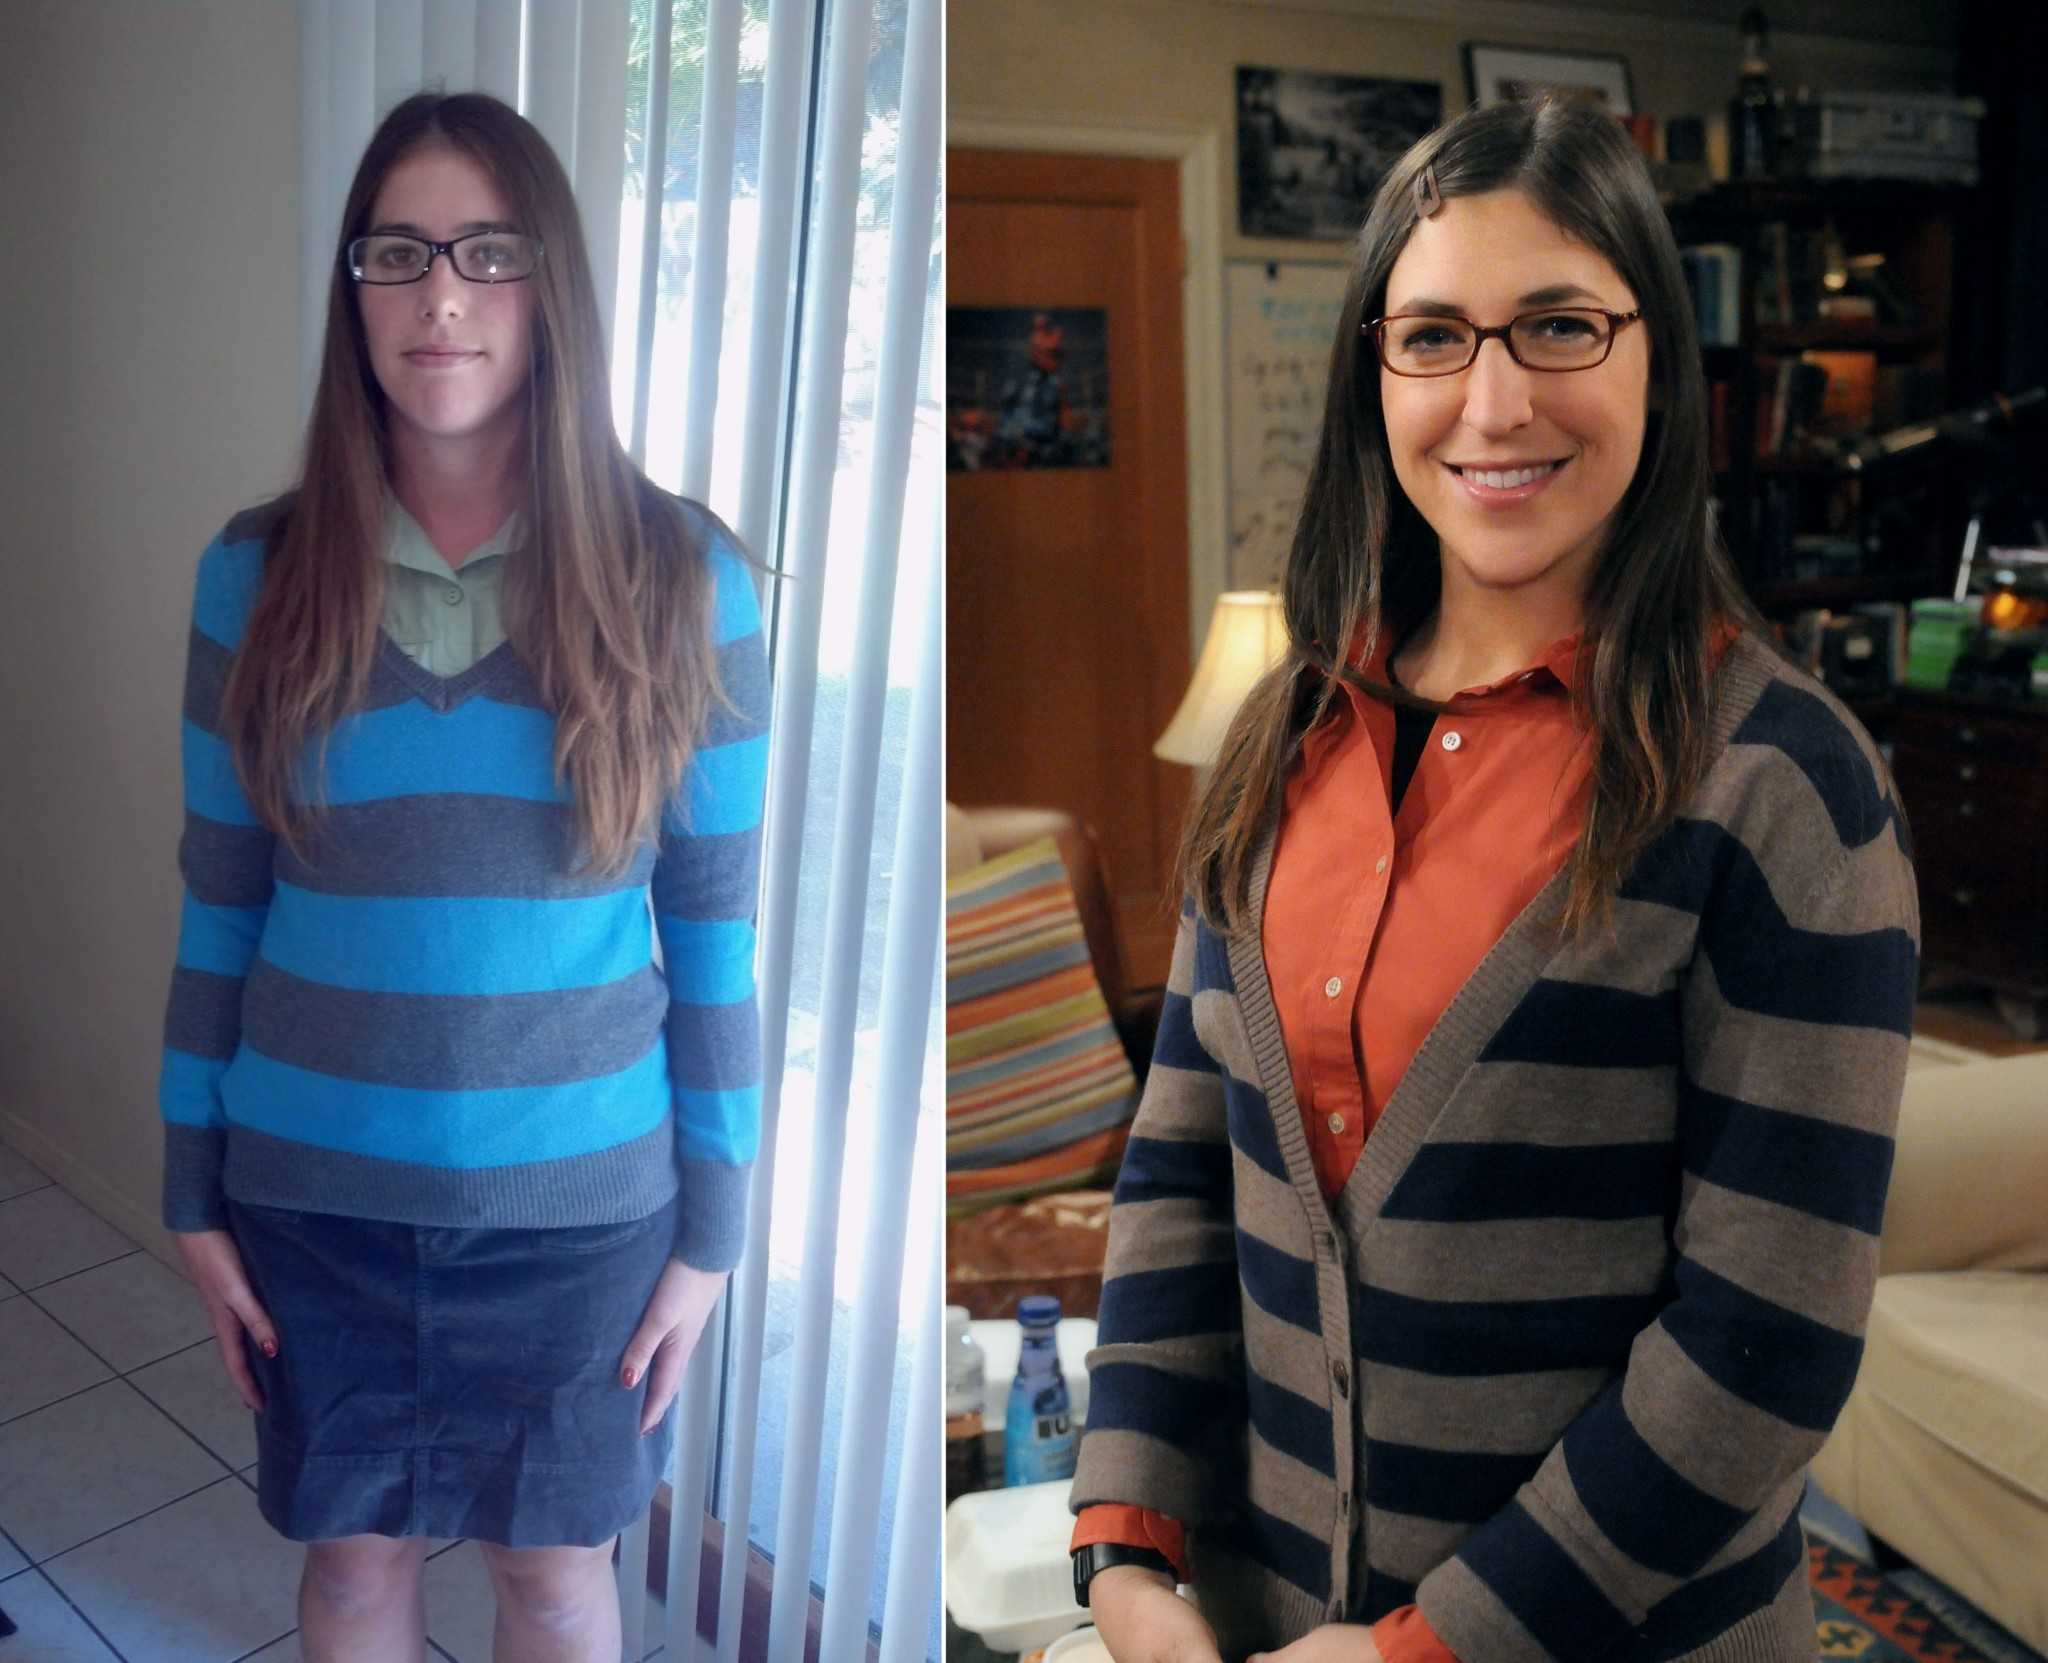 6. Amy Farrah Fowler from The Big Bang Theory